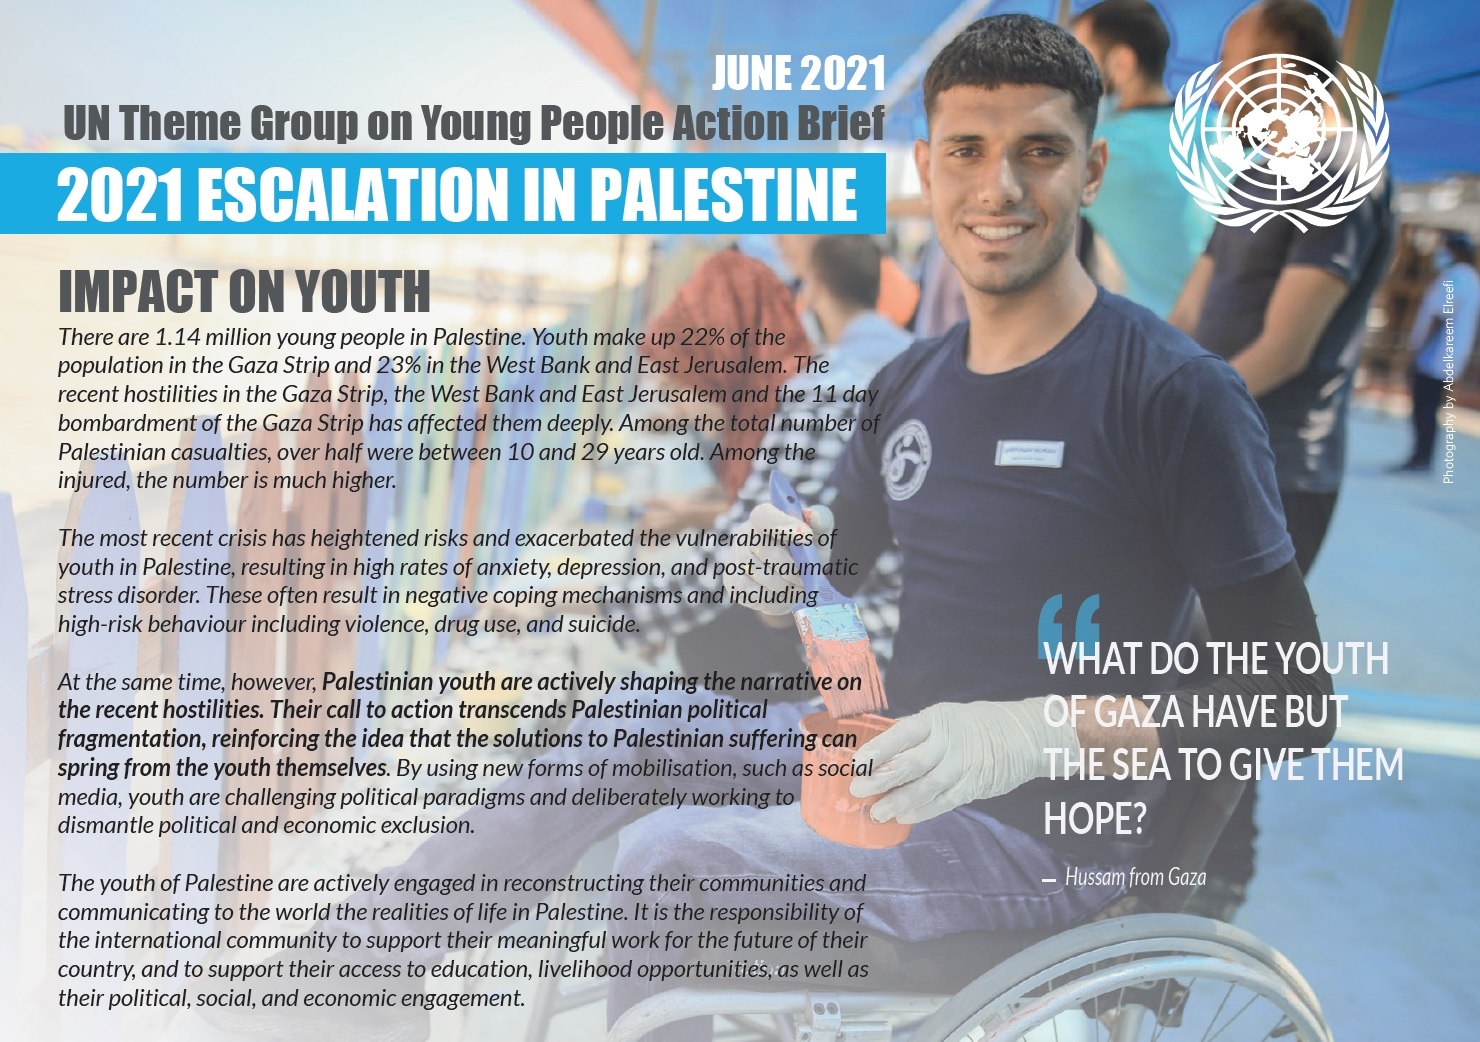 Impact of 2021 Escalations on Youth